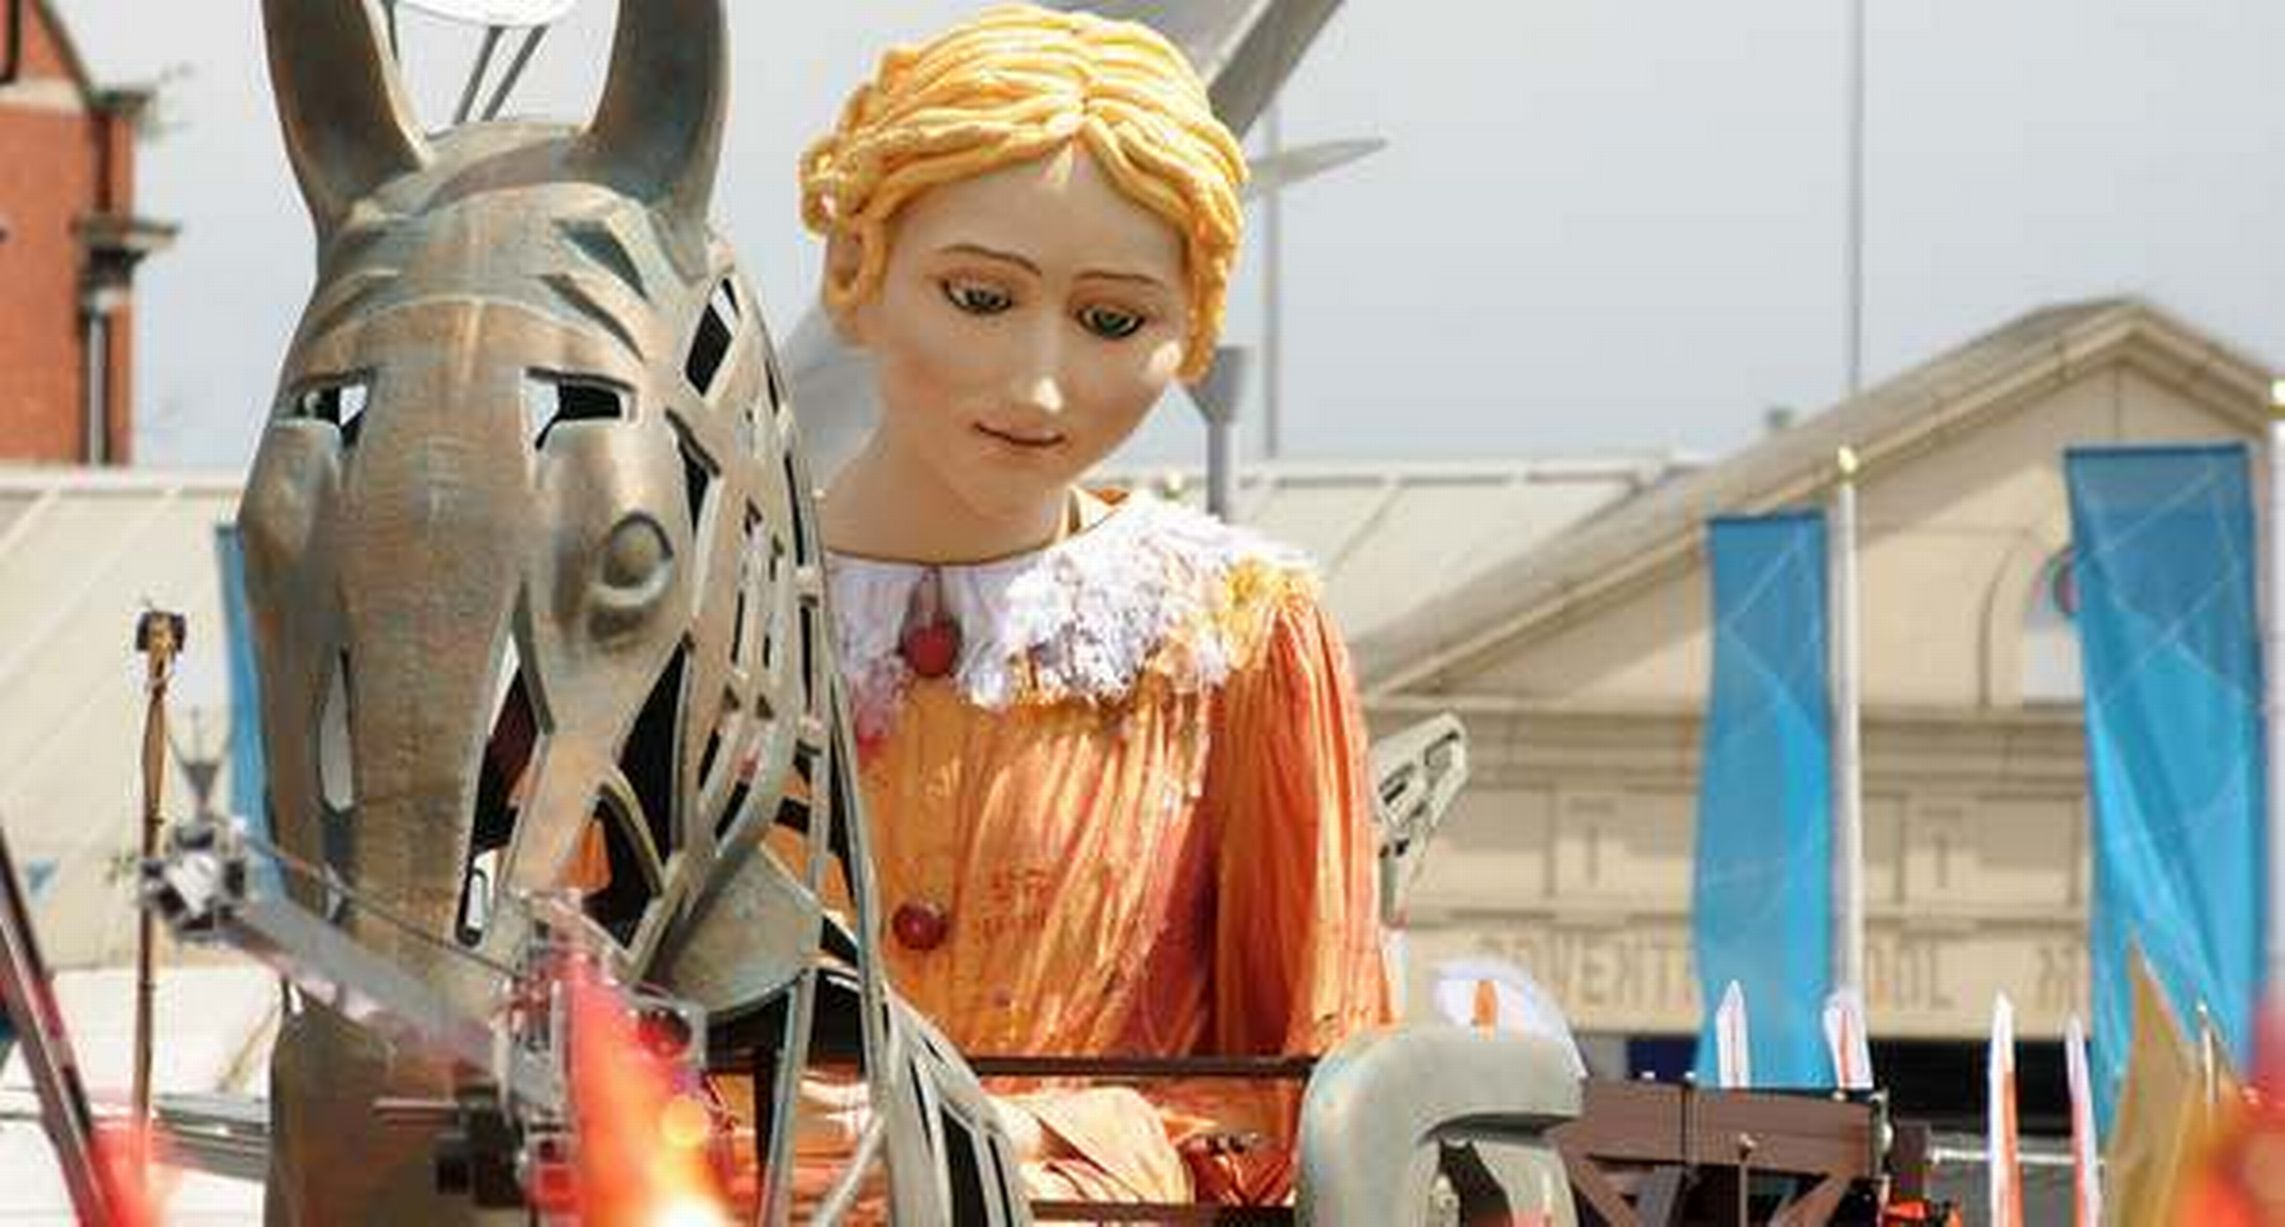 Lady Godiva travels through Coventry